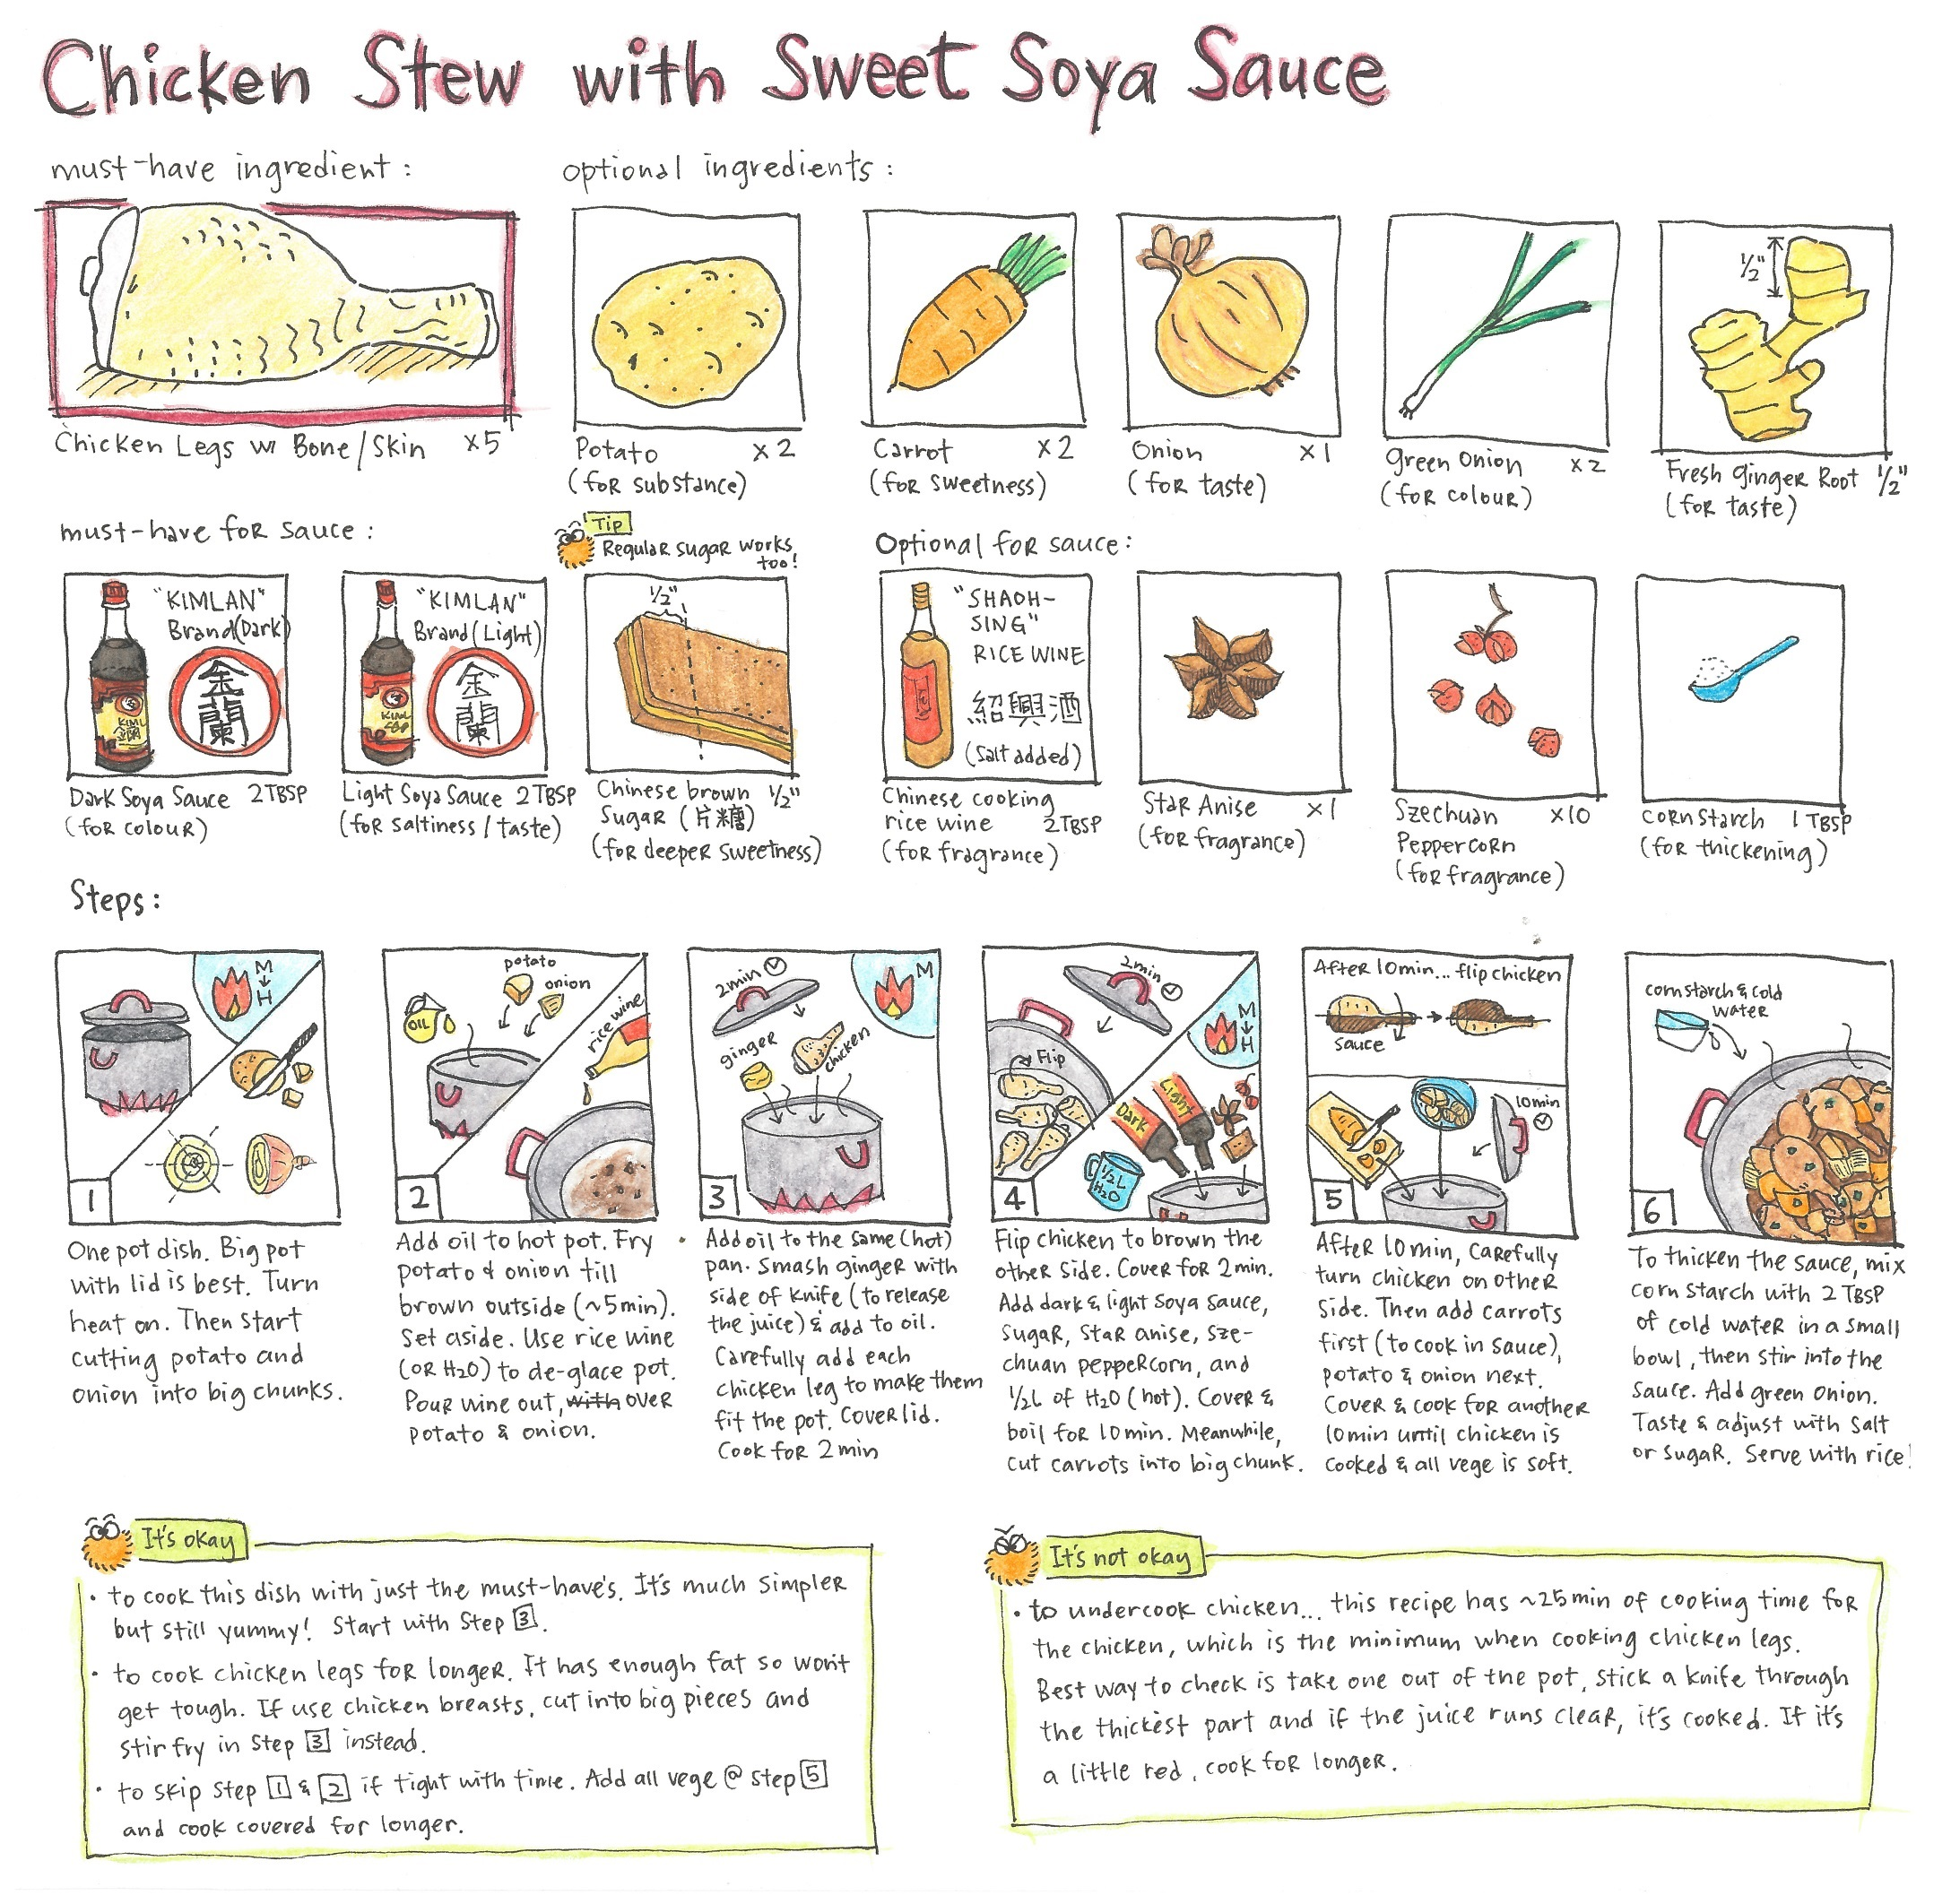 An illustrated recipe for chicken stew with sweet soya or soy saunce